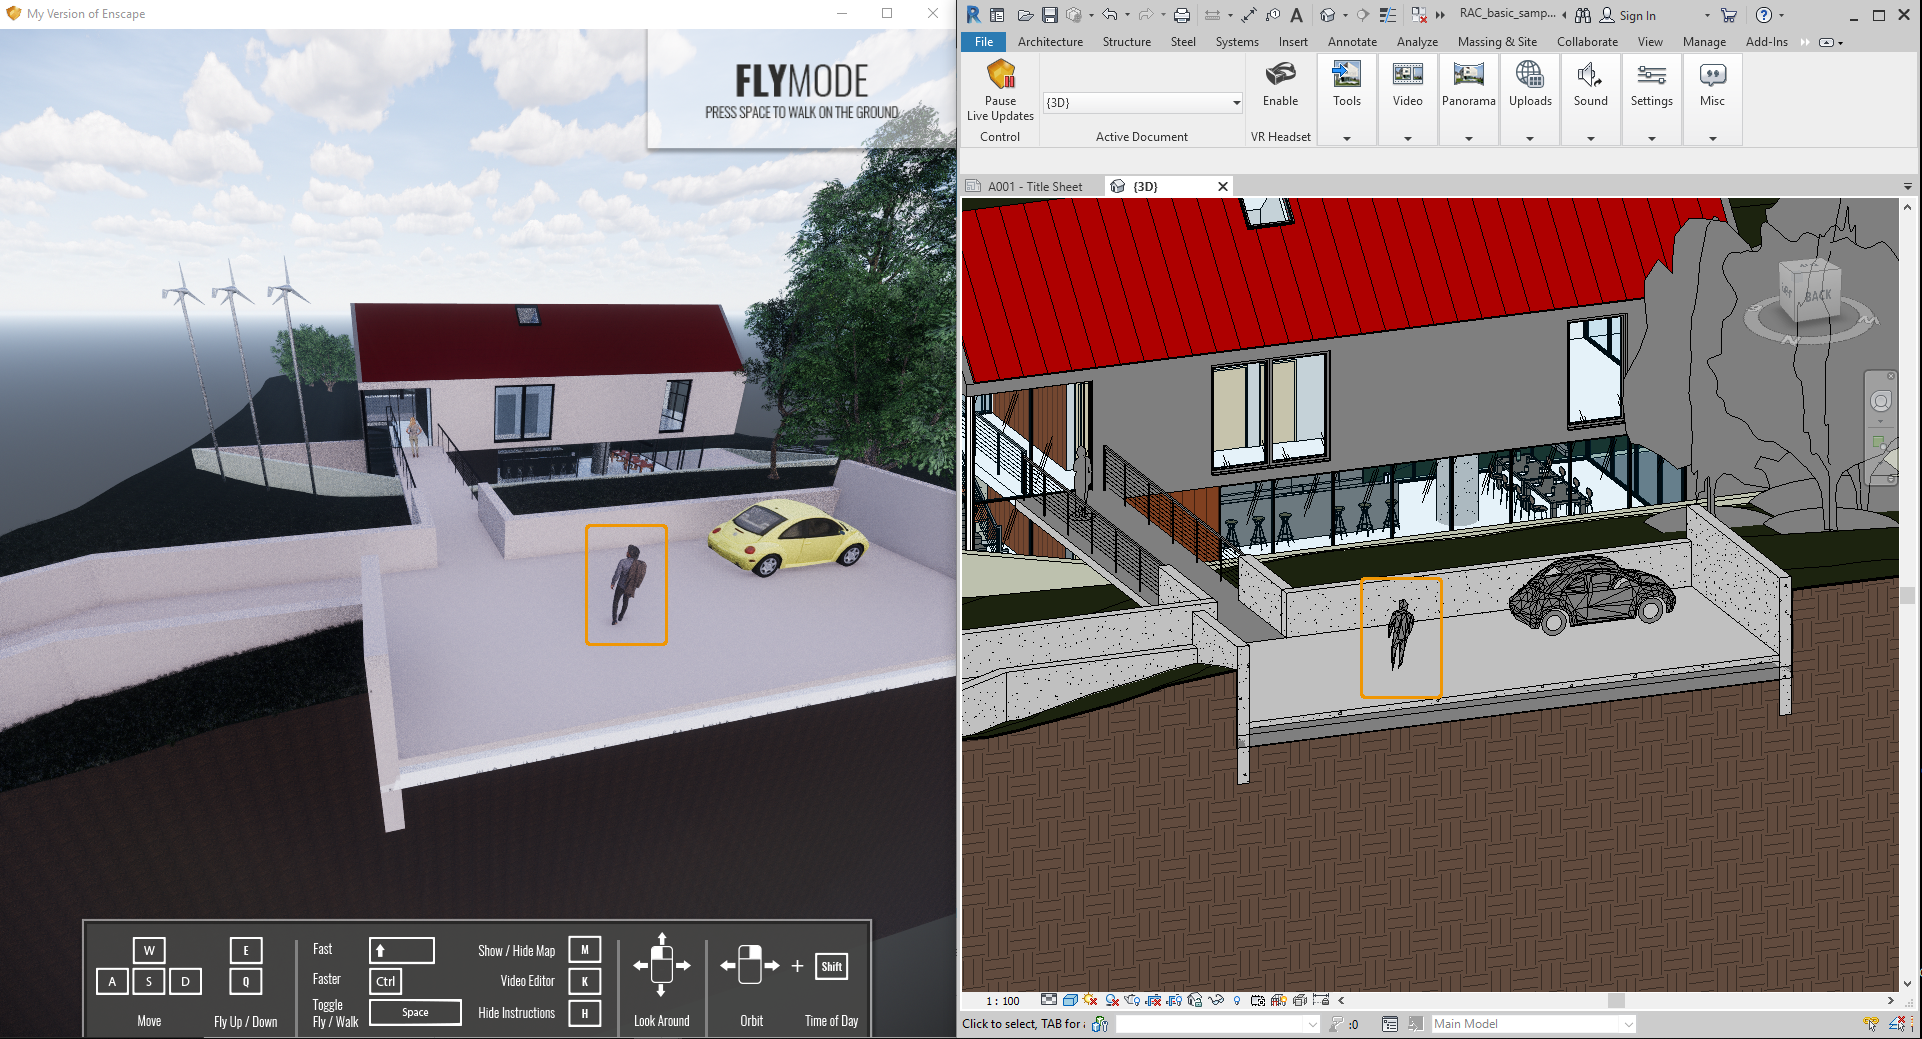 Asset placed on surface and show in Enscape